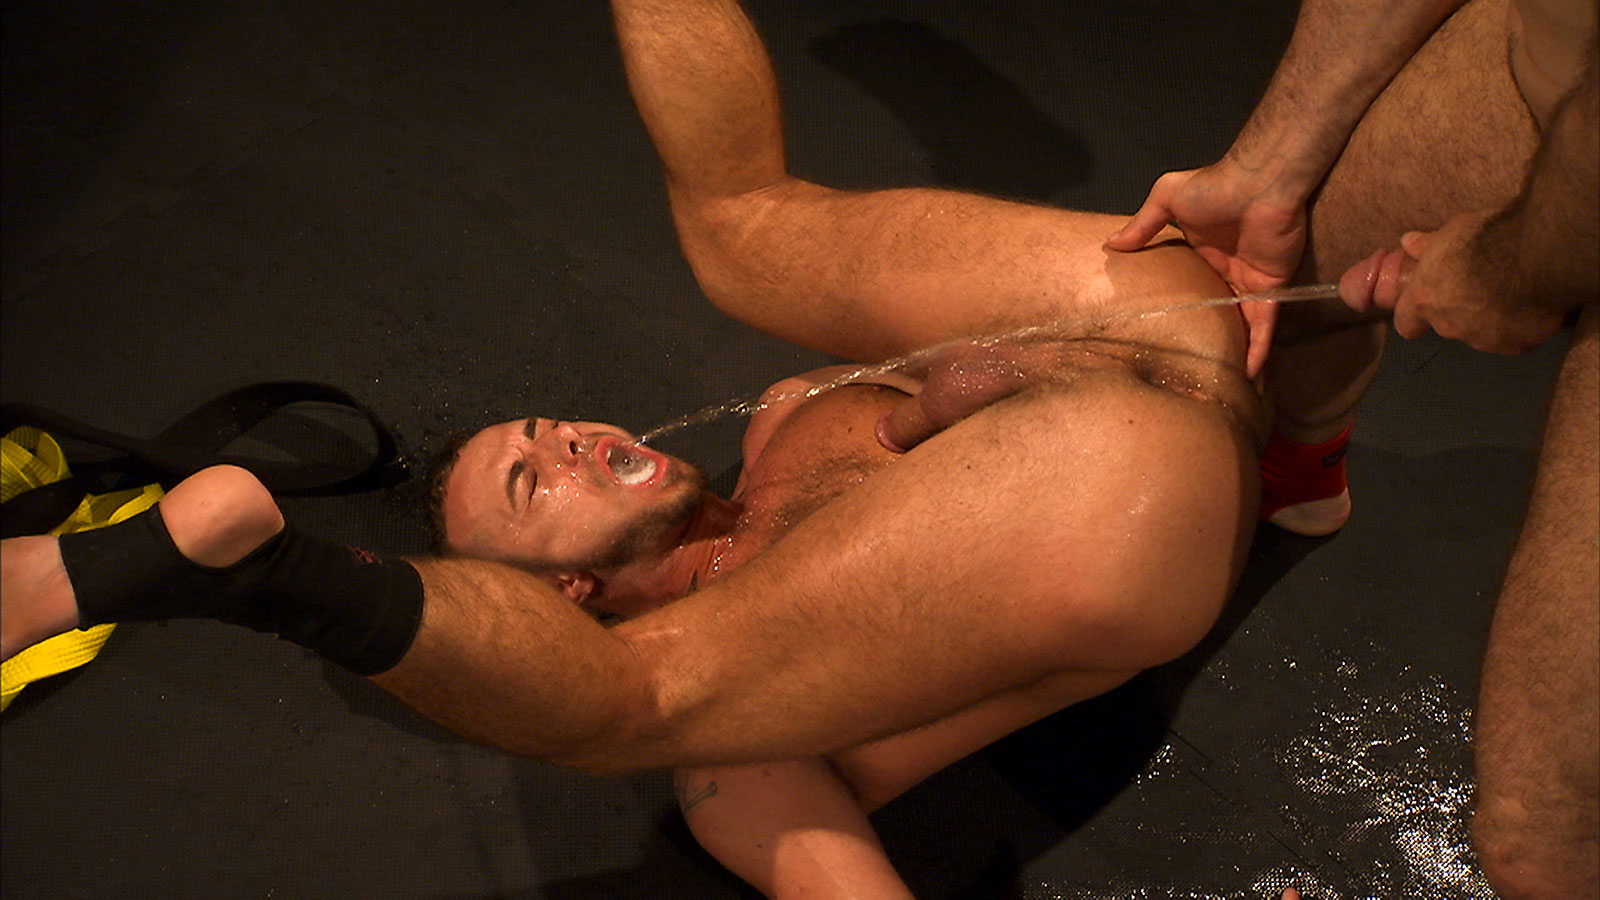 Spencer Reed, Jessie Colter, Lawson Kane, Draven Torres, Dirk Caber, Archer Quan - Punched and Pounded